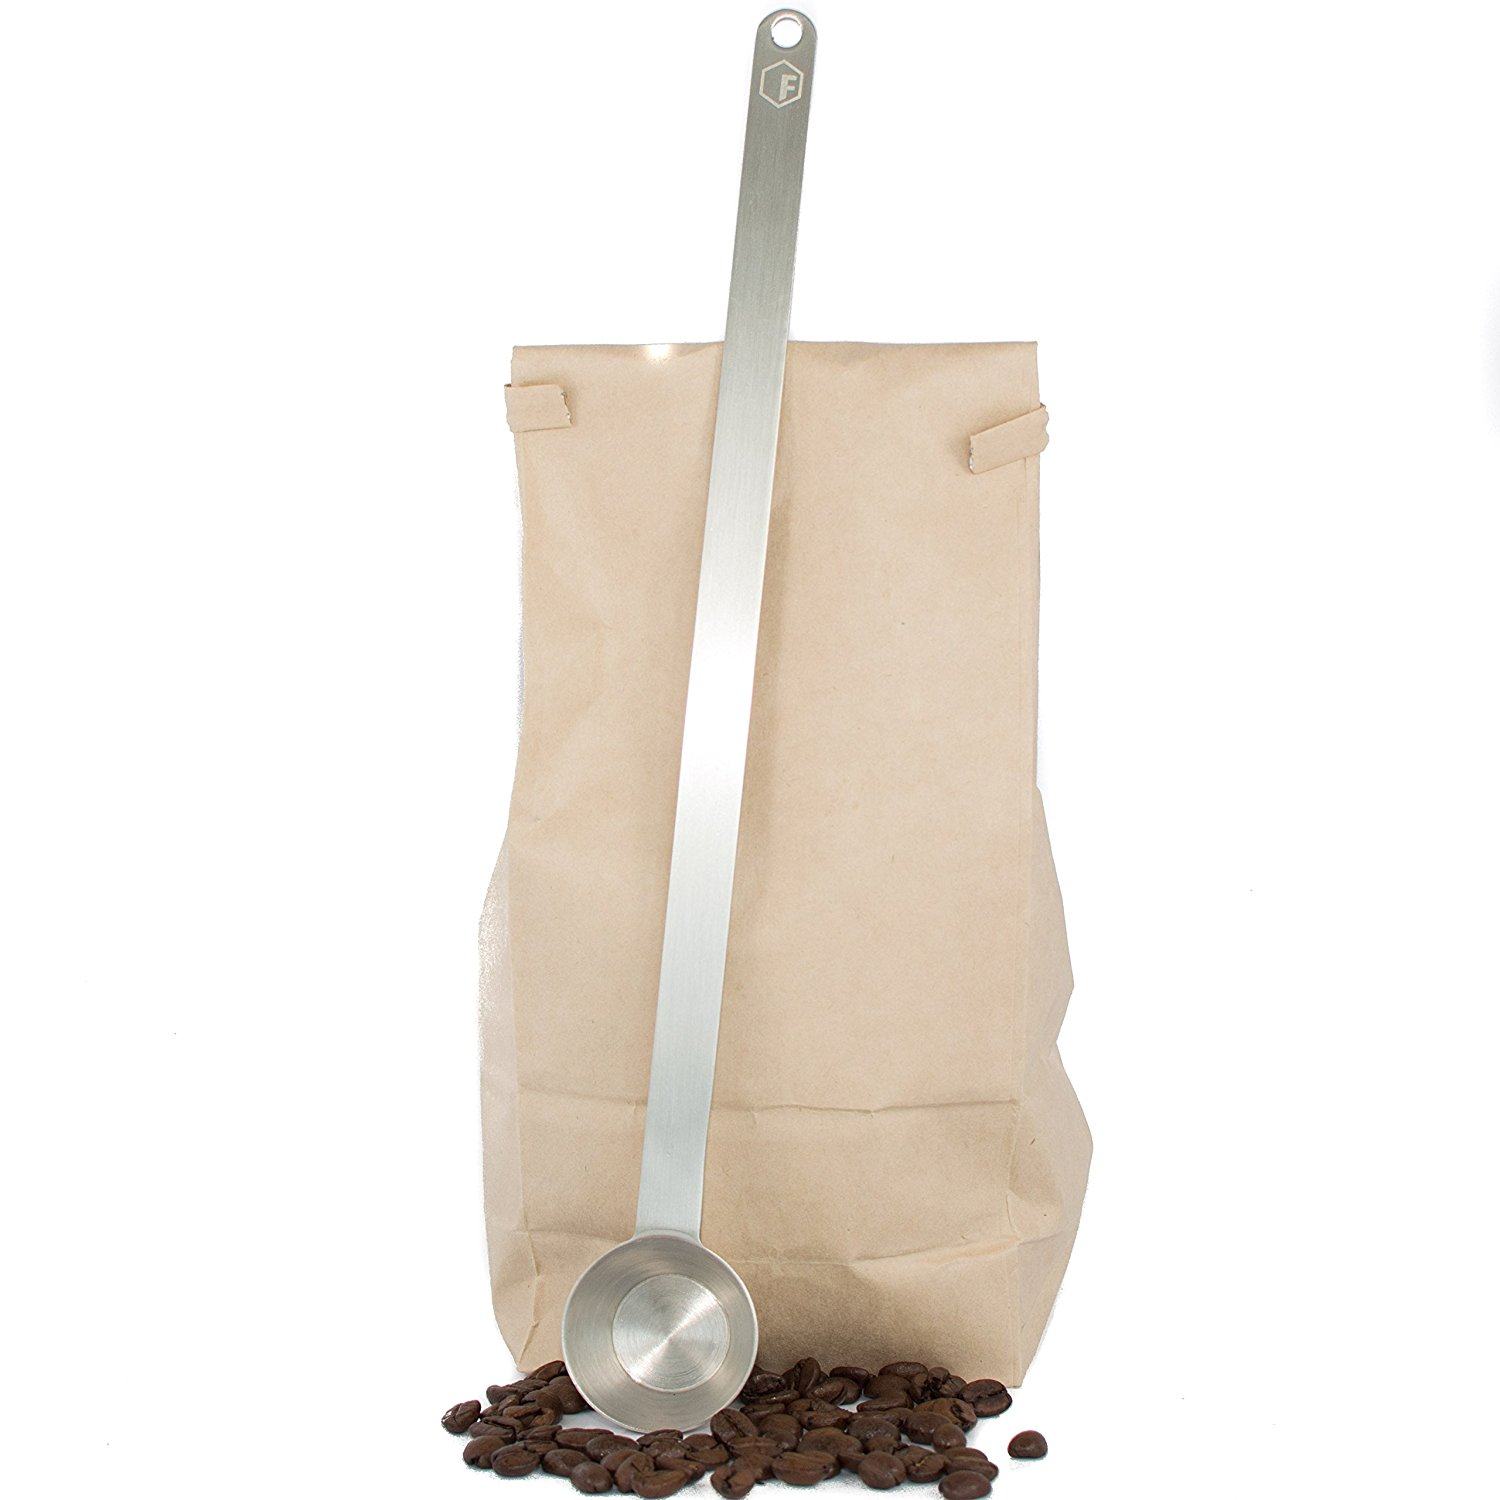 11.5' Extra Long Coffee Scoop 1 Tablespoon Premium Grade 18 8 Stainless Steel Reaches Bottom of Coffee Bags by Magnum Steel